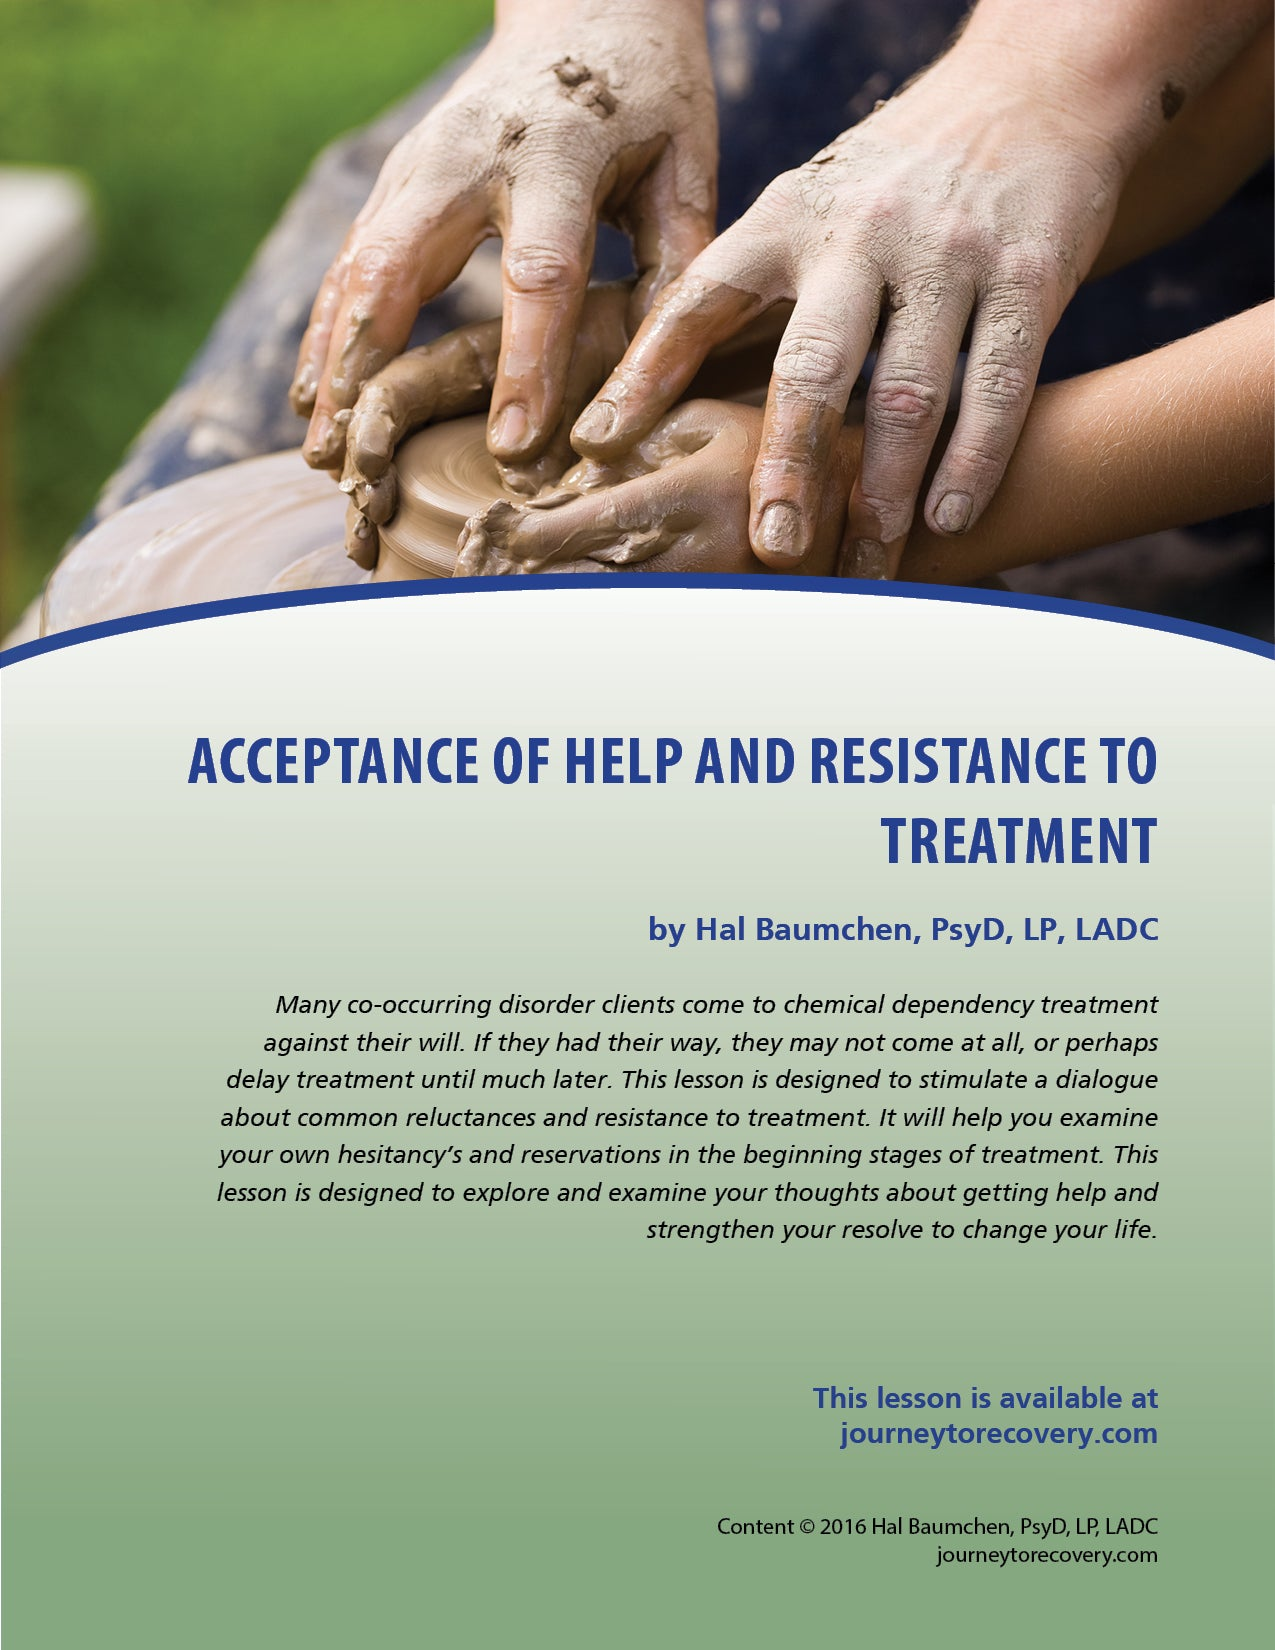 Acceptance of Help and Resistance to Treatment